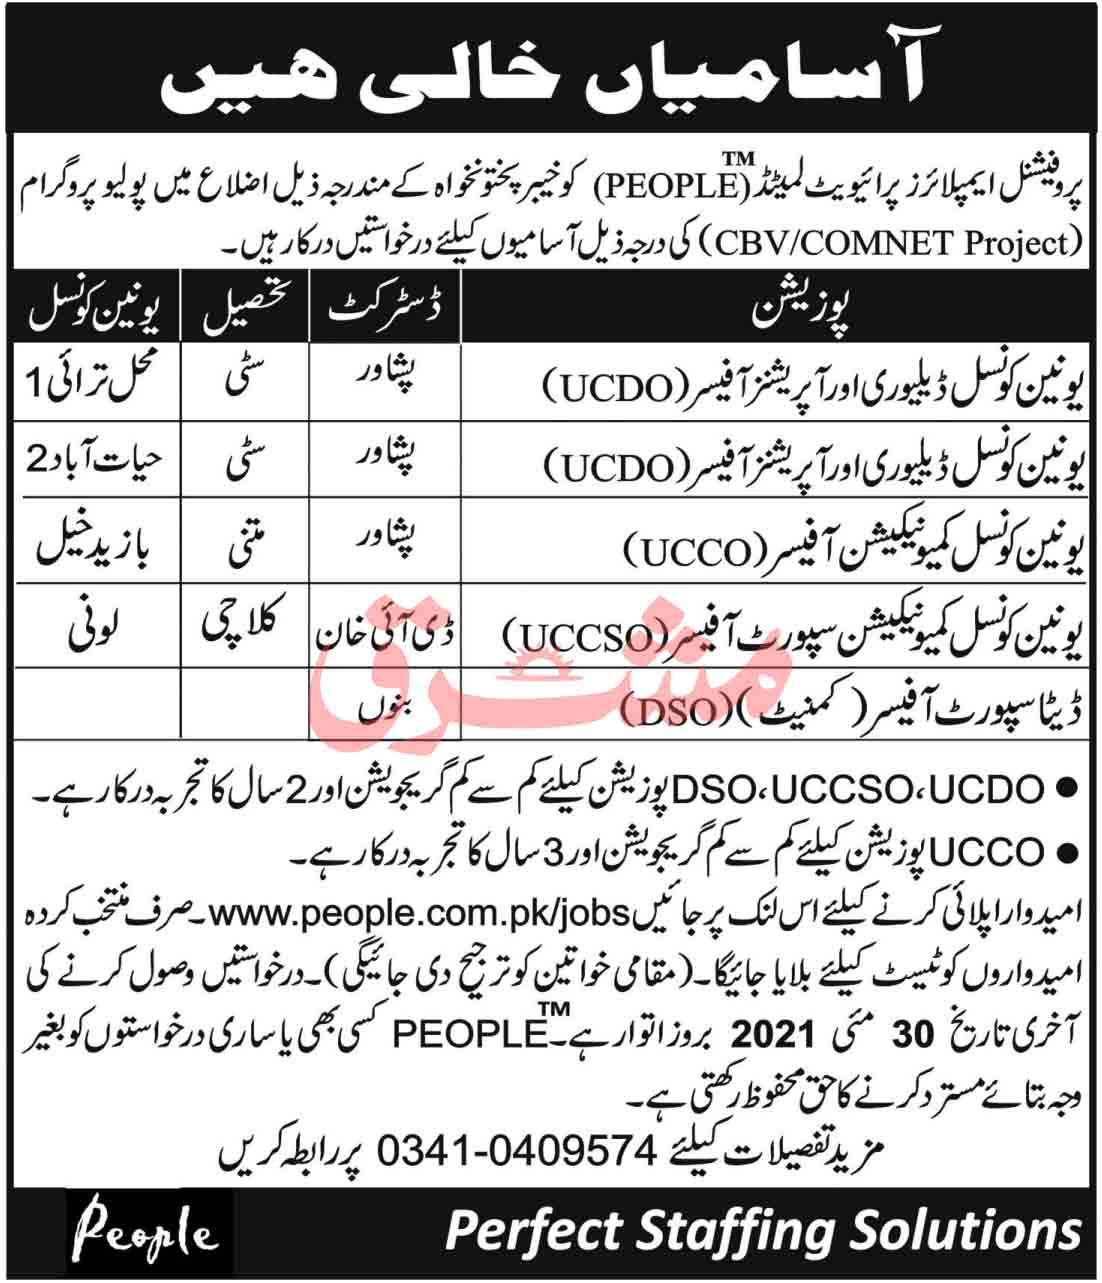 Professional Employees Private Limited (PEOPLE) Jobs May 2021 (50 Posts)